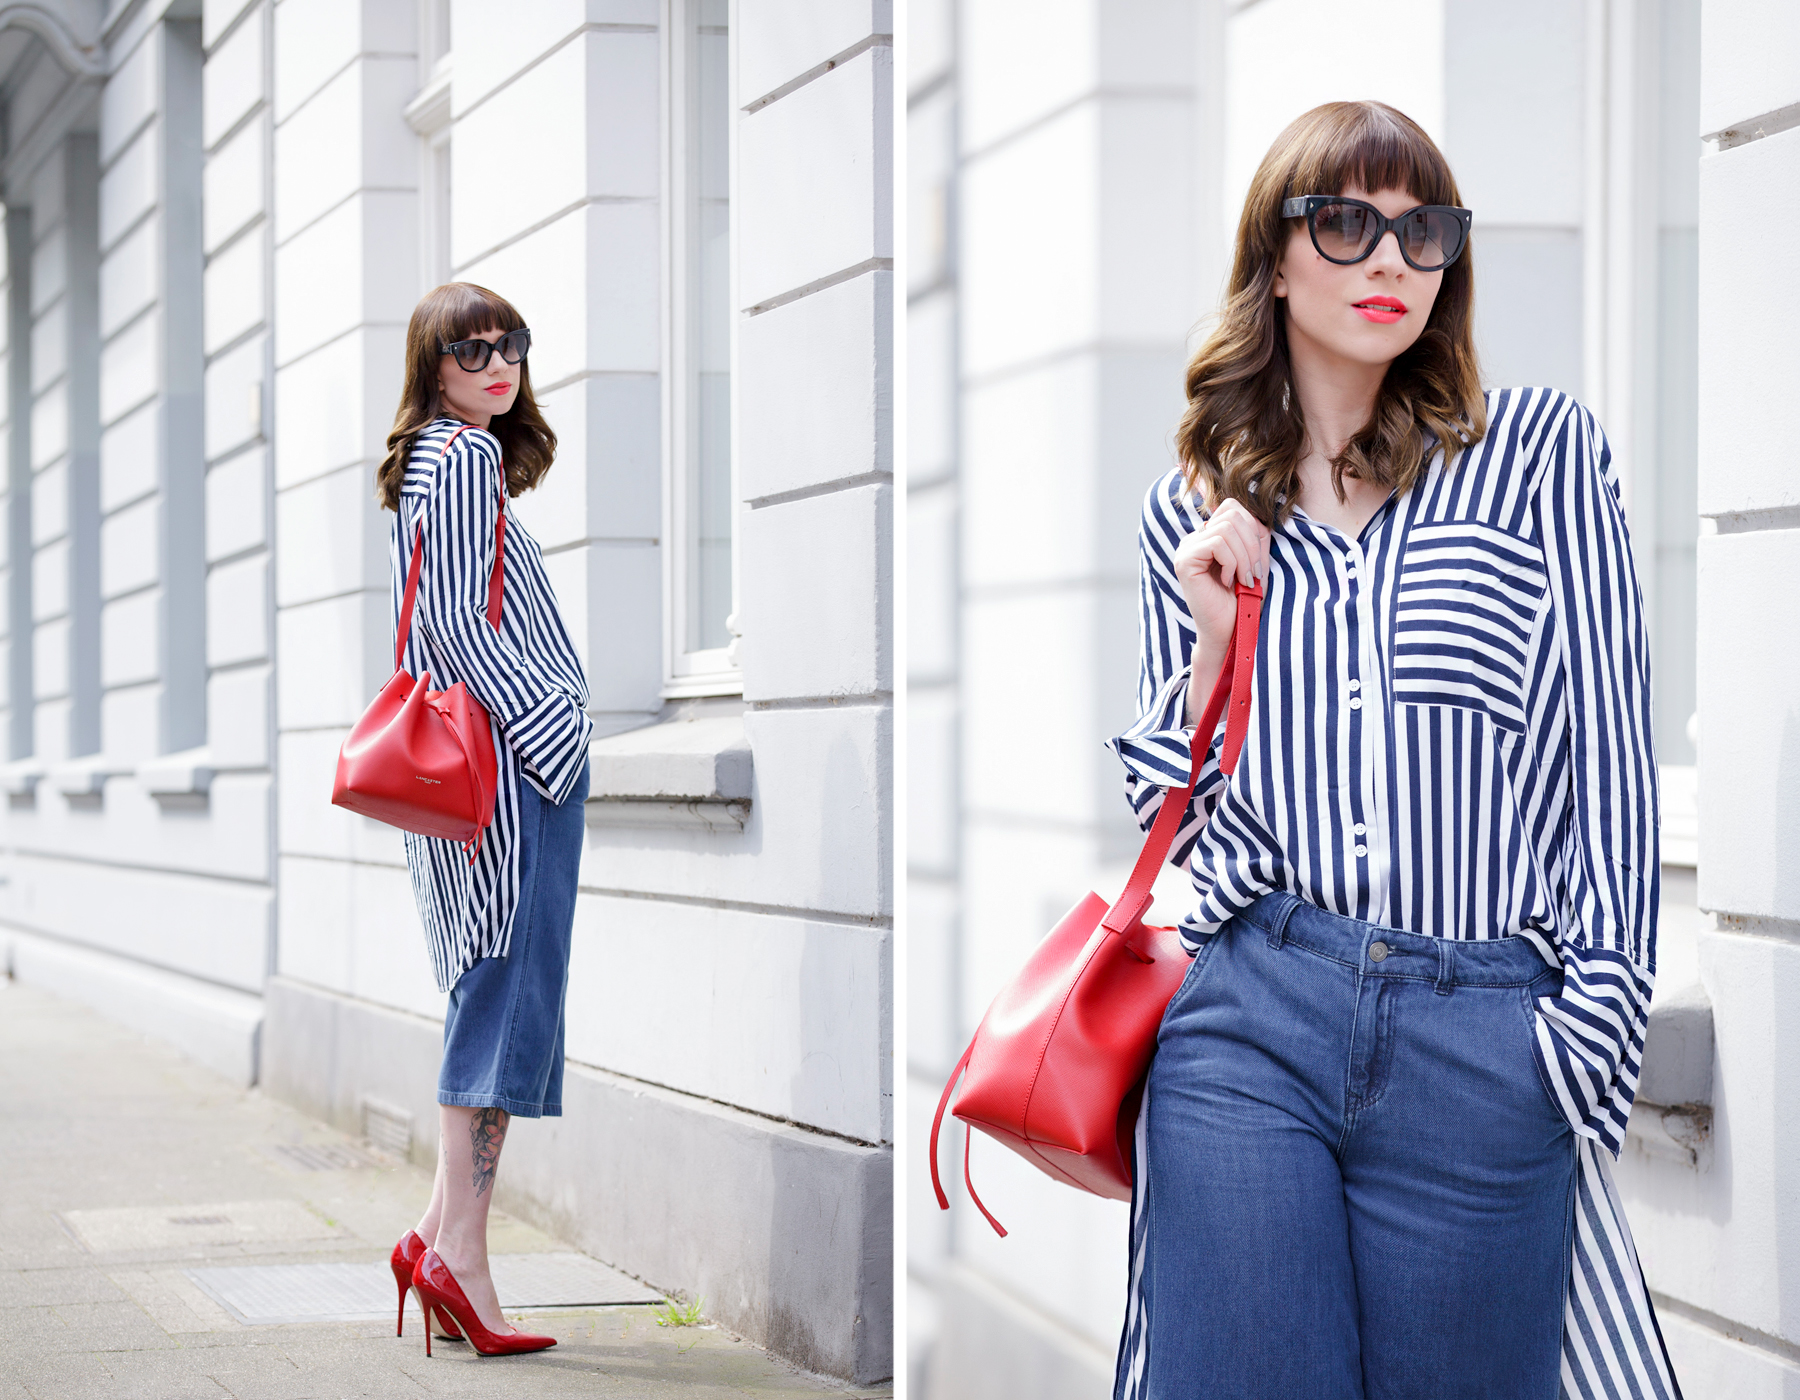 francaise chic striped outfit ootd look of the day lookbook love pretty parisienne outfit denim culottes vero moda edited striped shirt lancaster paris bucket bag prada mister spex sunglasses pumps cats & digs fashionblog ricarda schernus modeblog 8